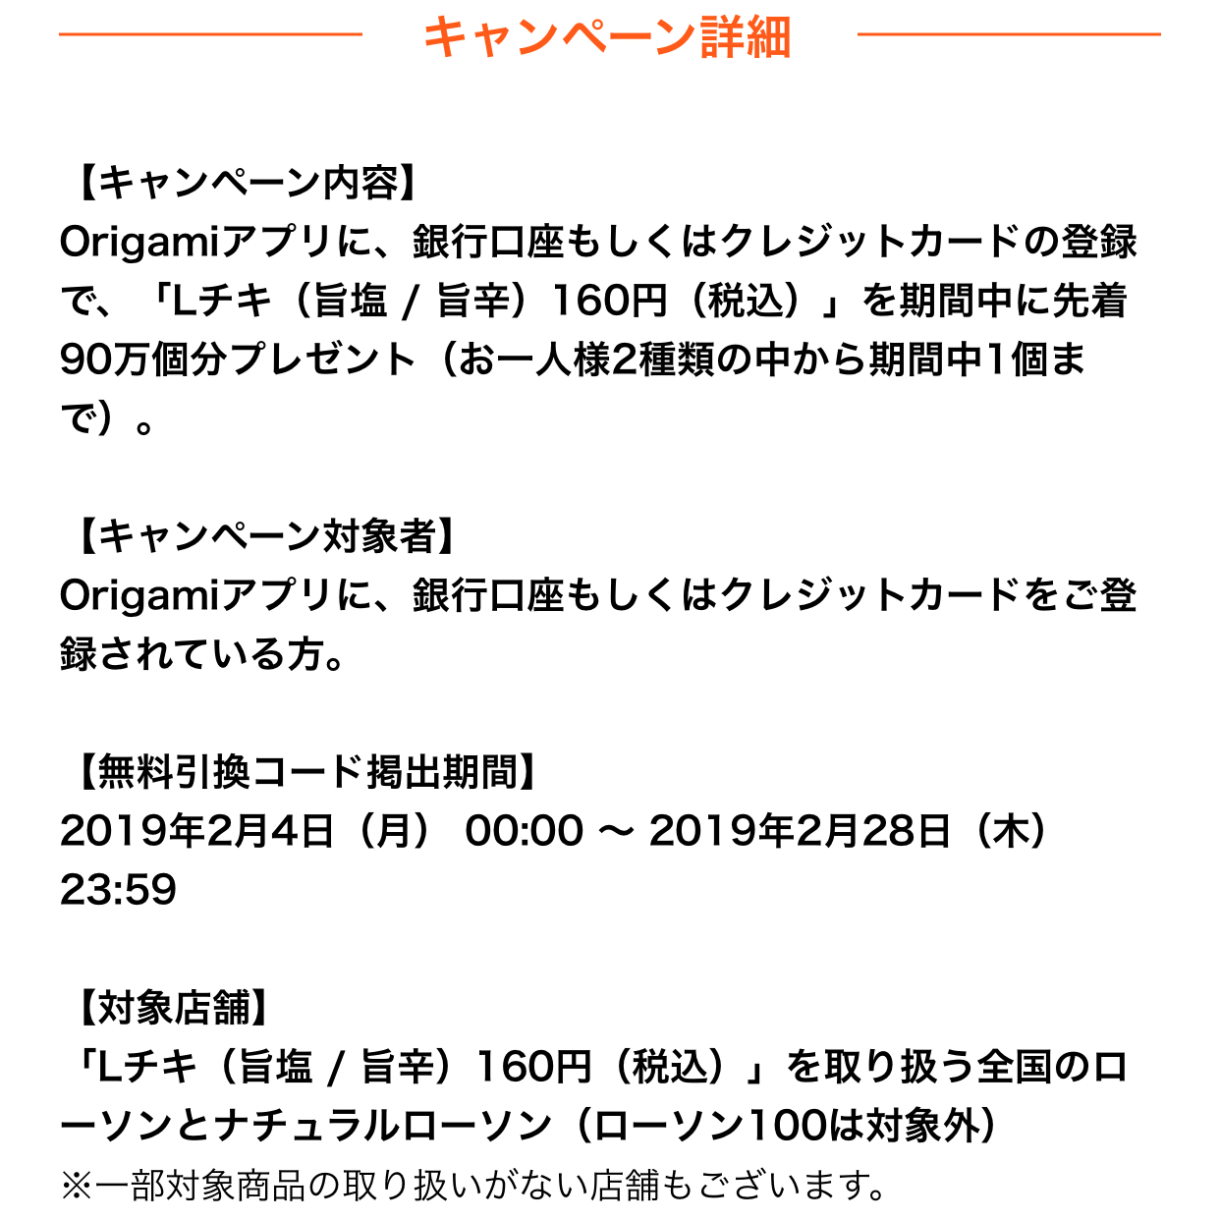 Origami Pay クーポンでLチキ1個無料キャンペーン、先着90万個 2/28まで